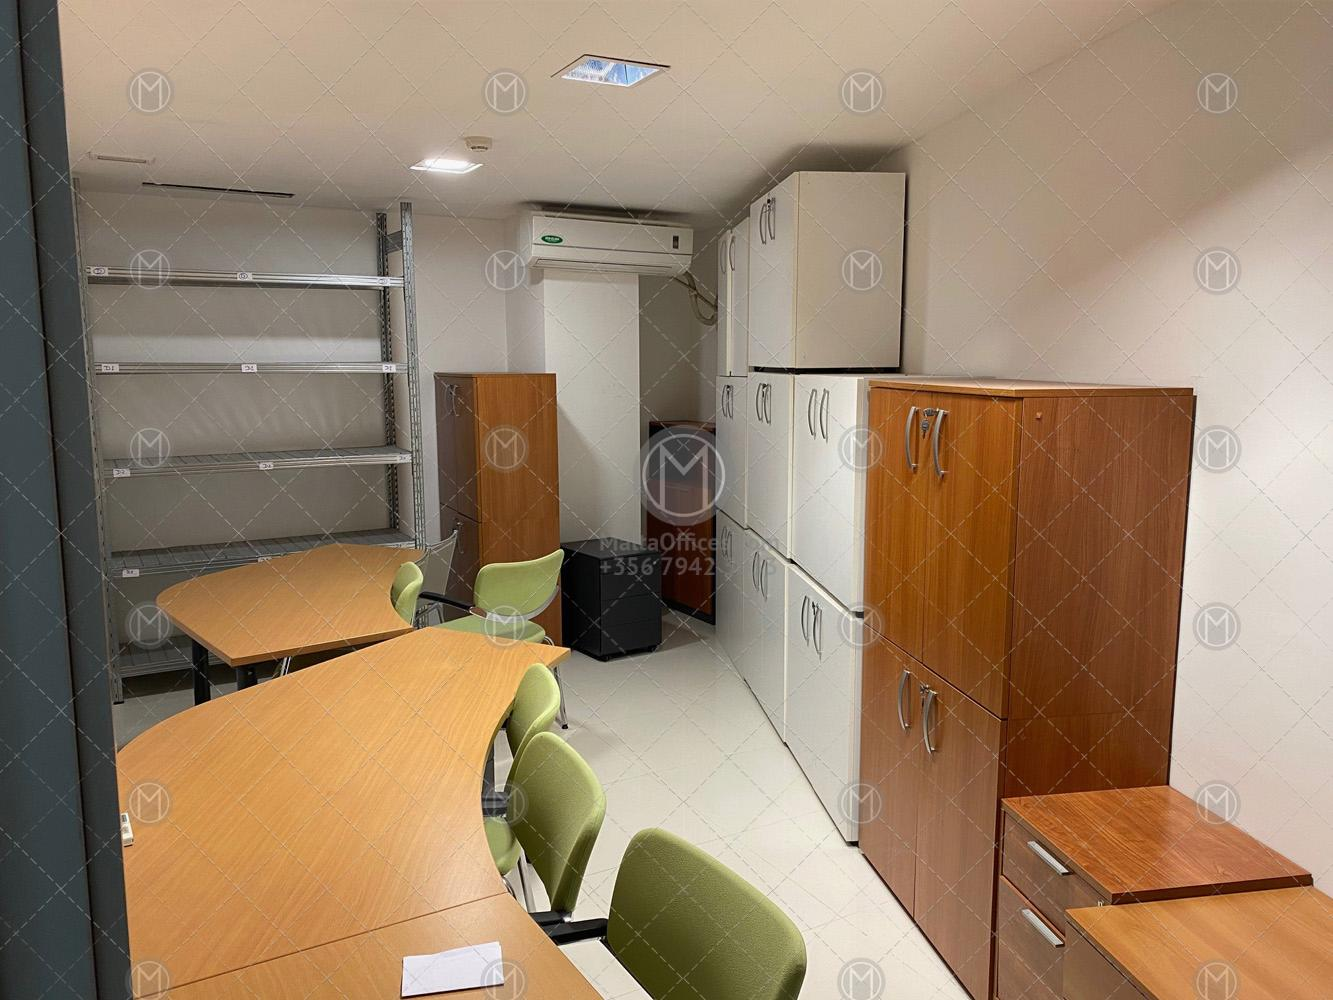 200m2 Furnished Office for Rent in Birkirkara - (1)